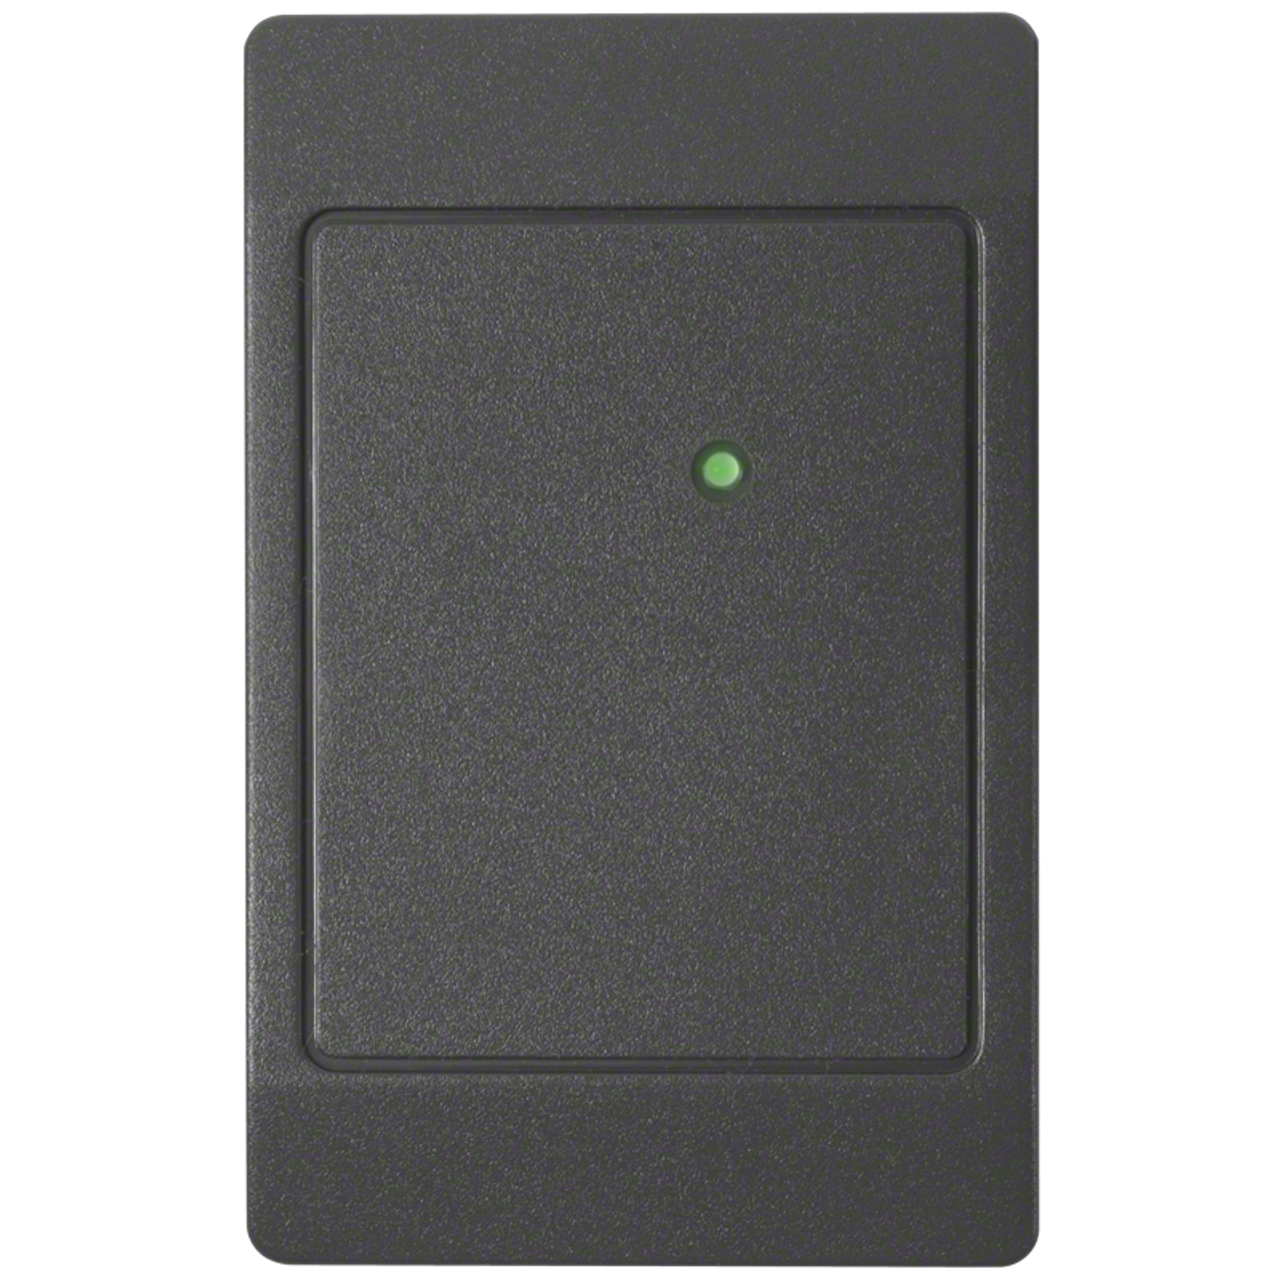 HID ThinLine II 5395 125 kHz Proximity Wall Switch Reader